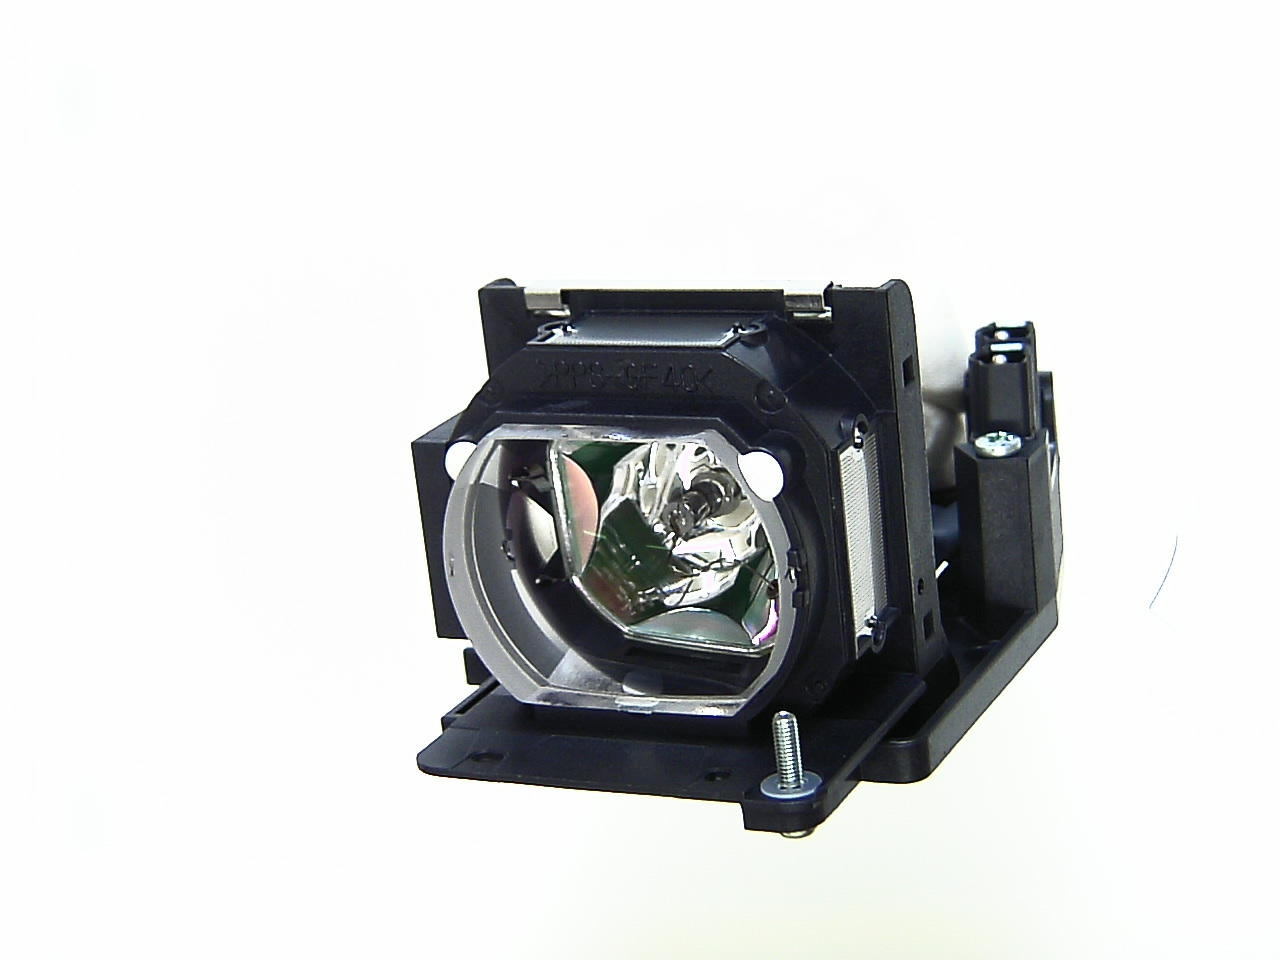 Original  Lámpara For SAVILLE AV TMX-1700XL Proyector.